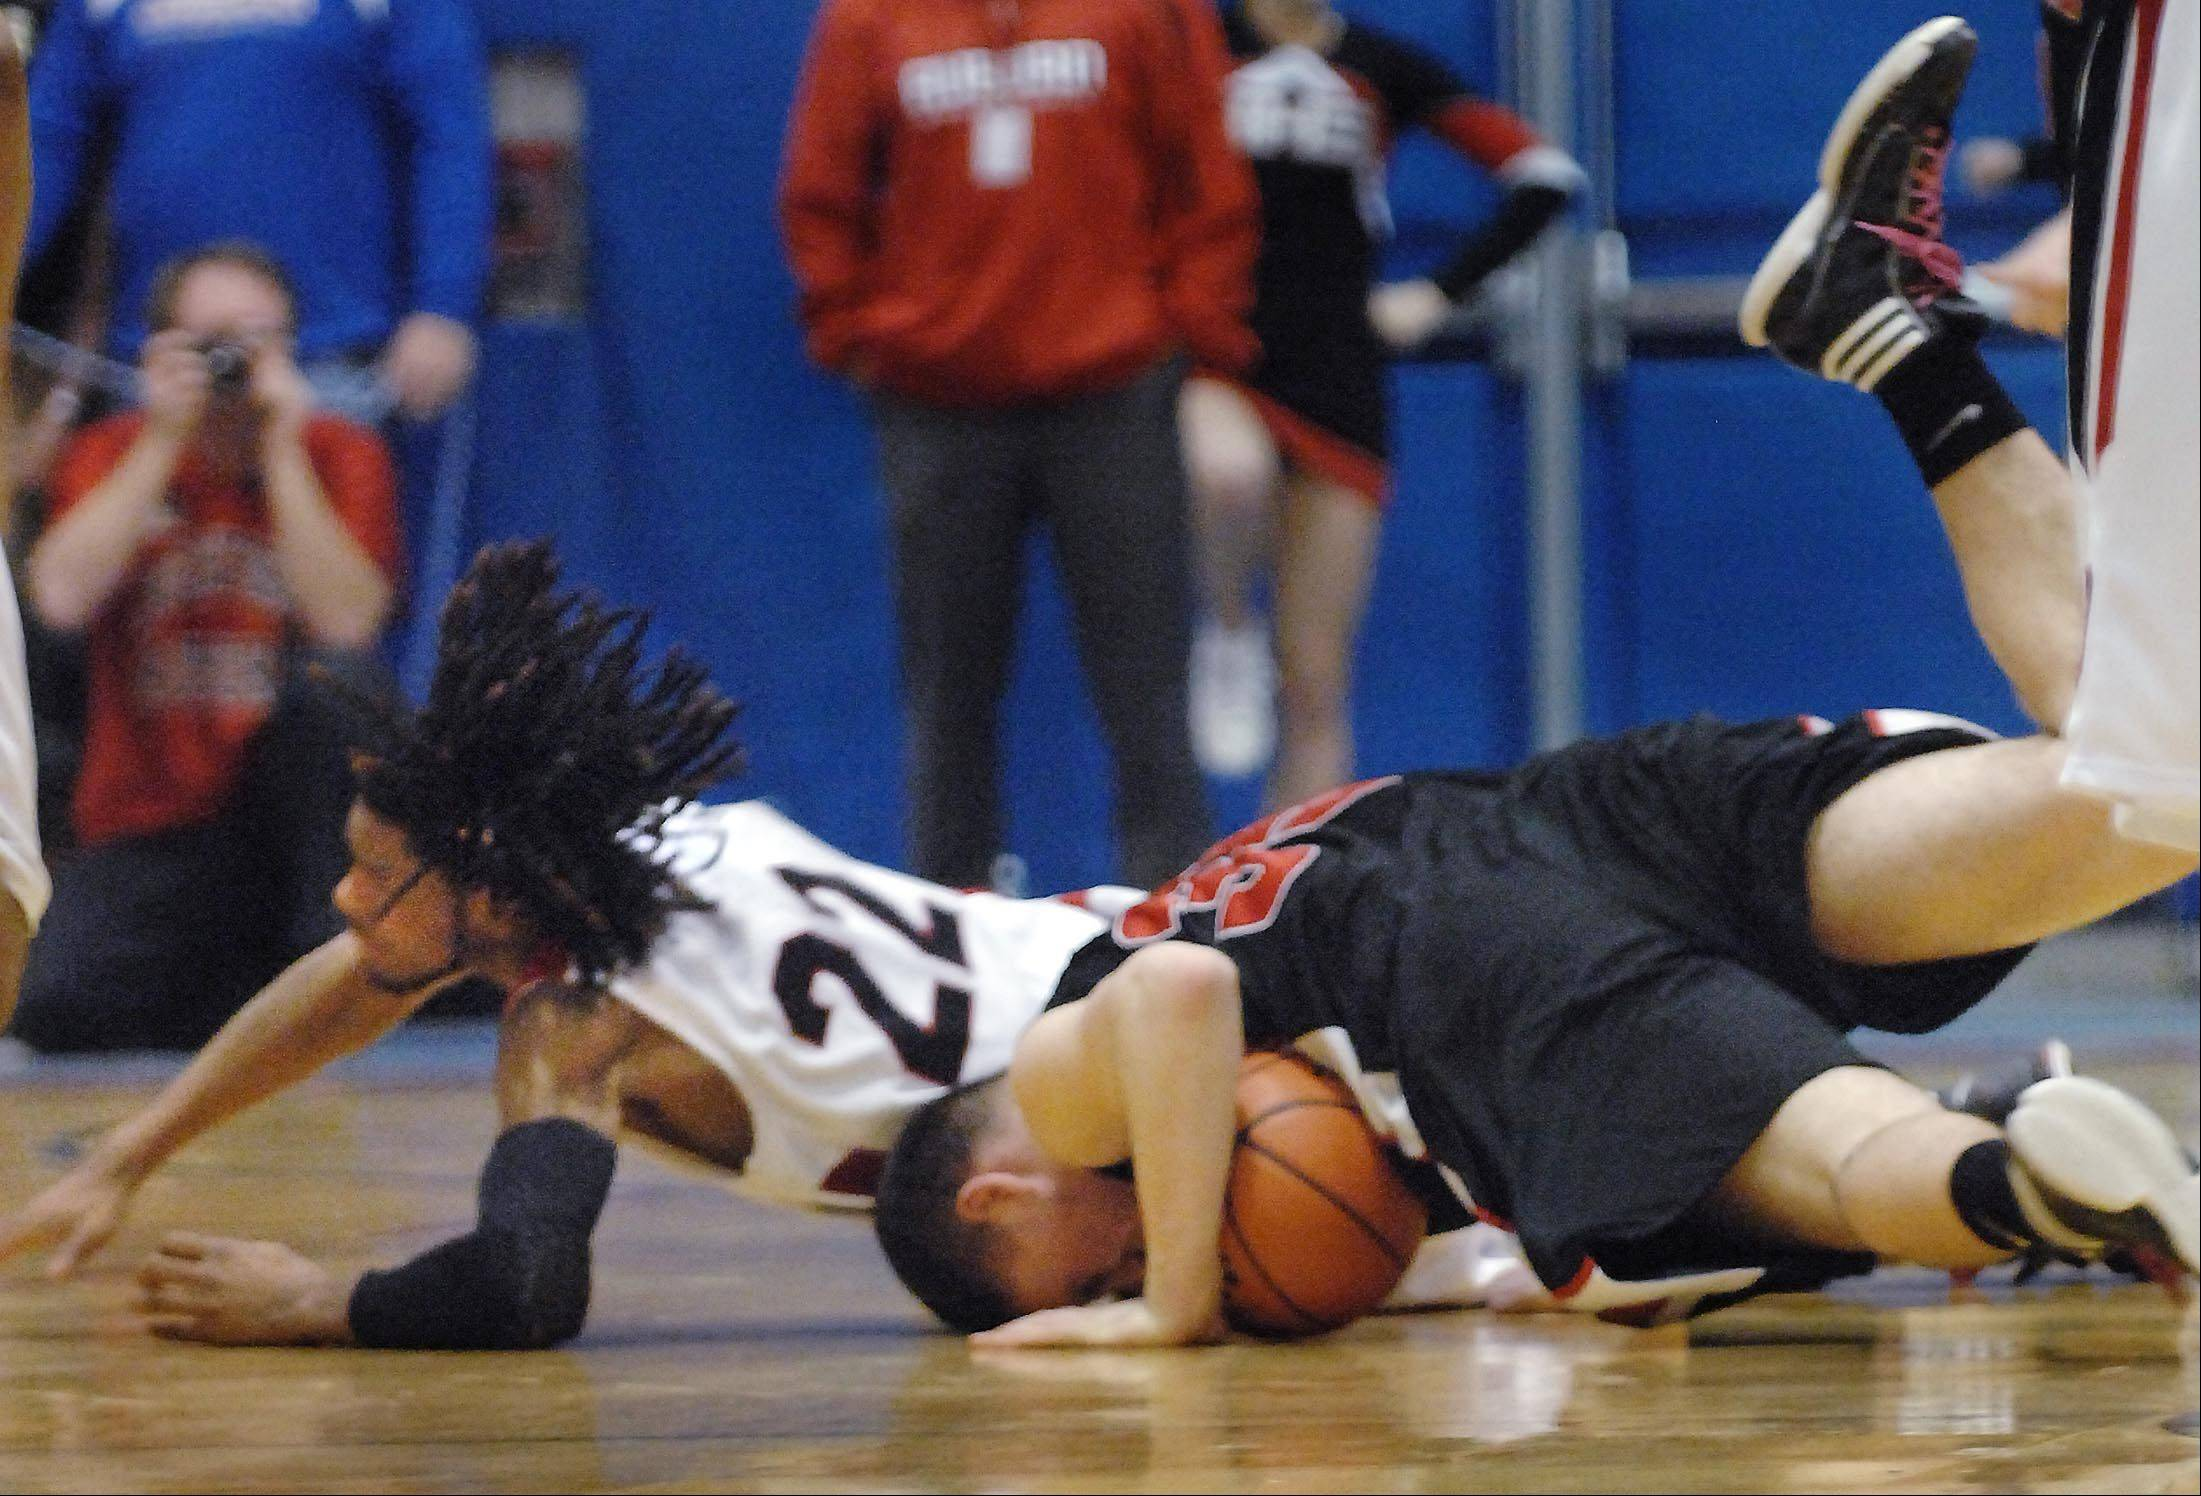 Huntley's Justin Frederick gets his head slammed to the floor as Rockford Auburn's LaMark Foote falls on him as they chase a loose ball in the Class 4A Dundee-Crown sectional semifinal game Tuesday in Carpentersville.